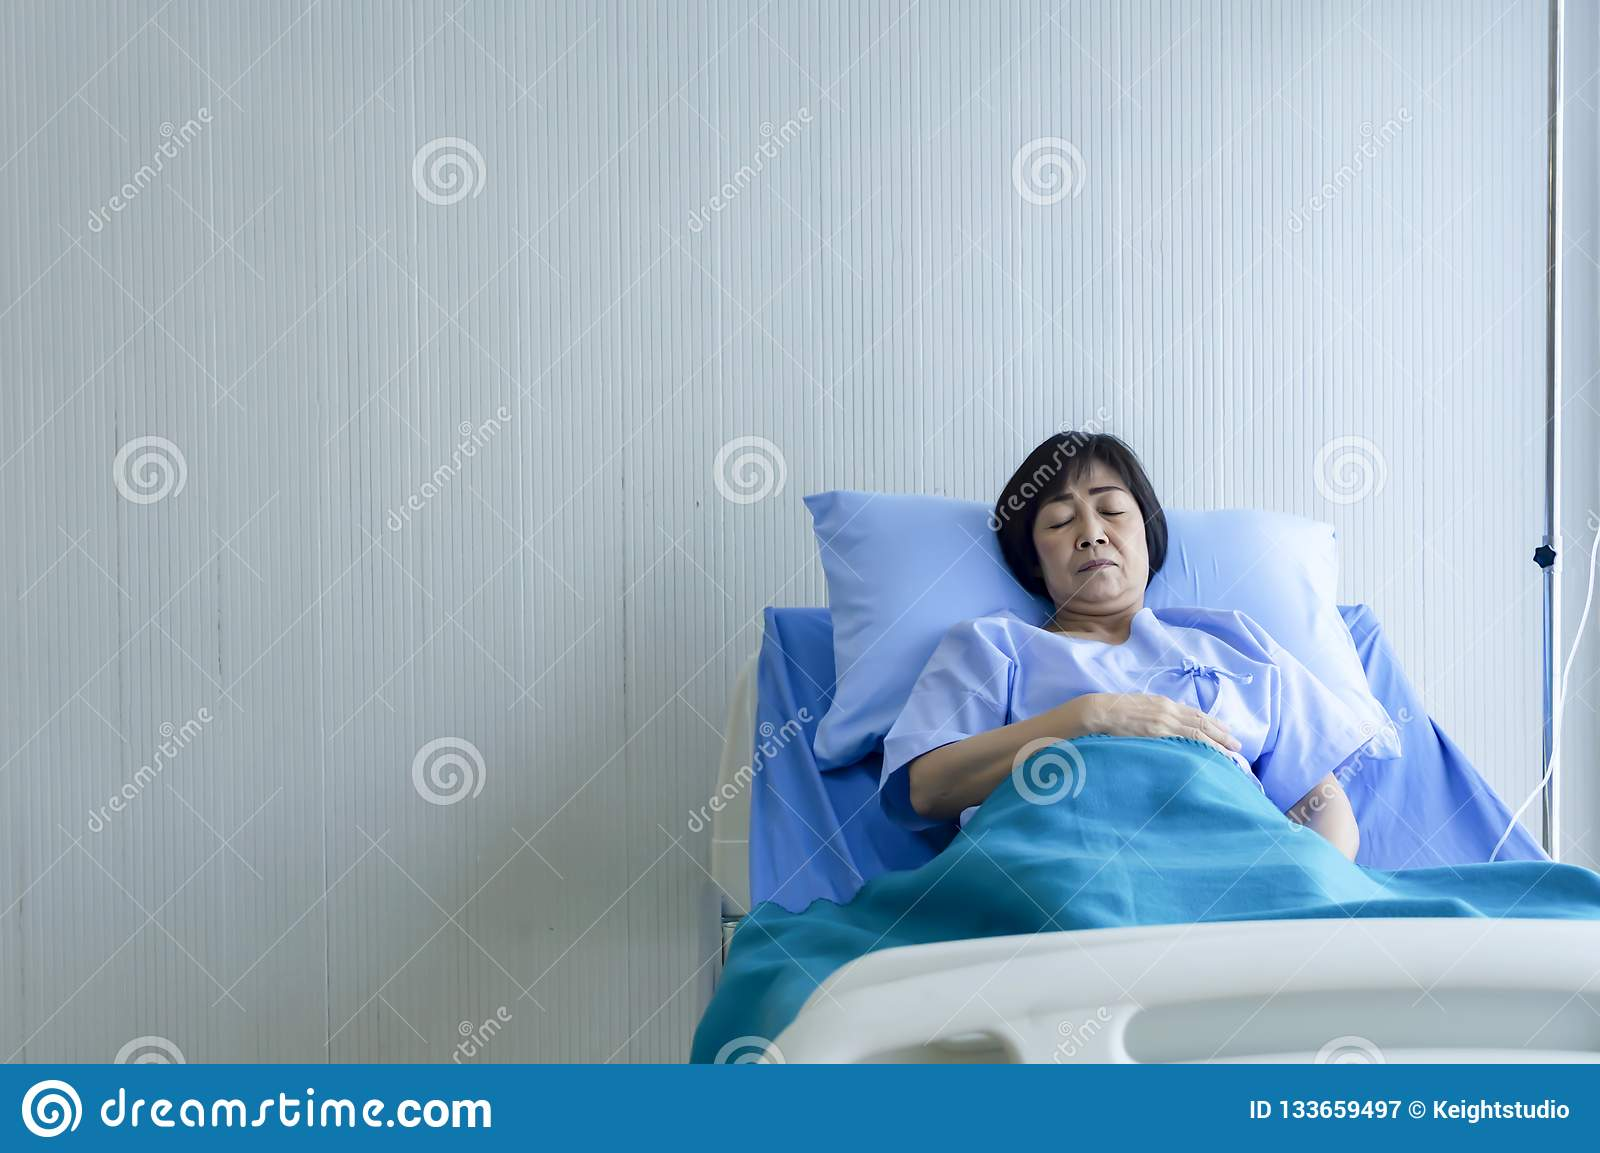 Older Sick Woman Patient Lay On Bed In Hospital With